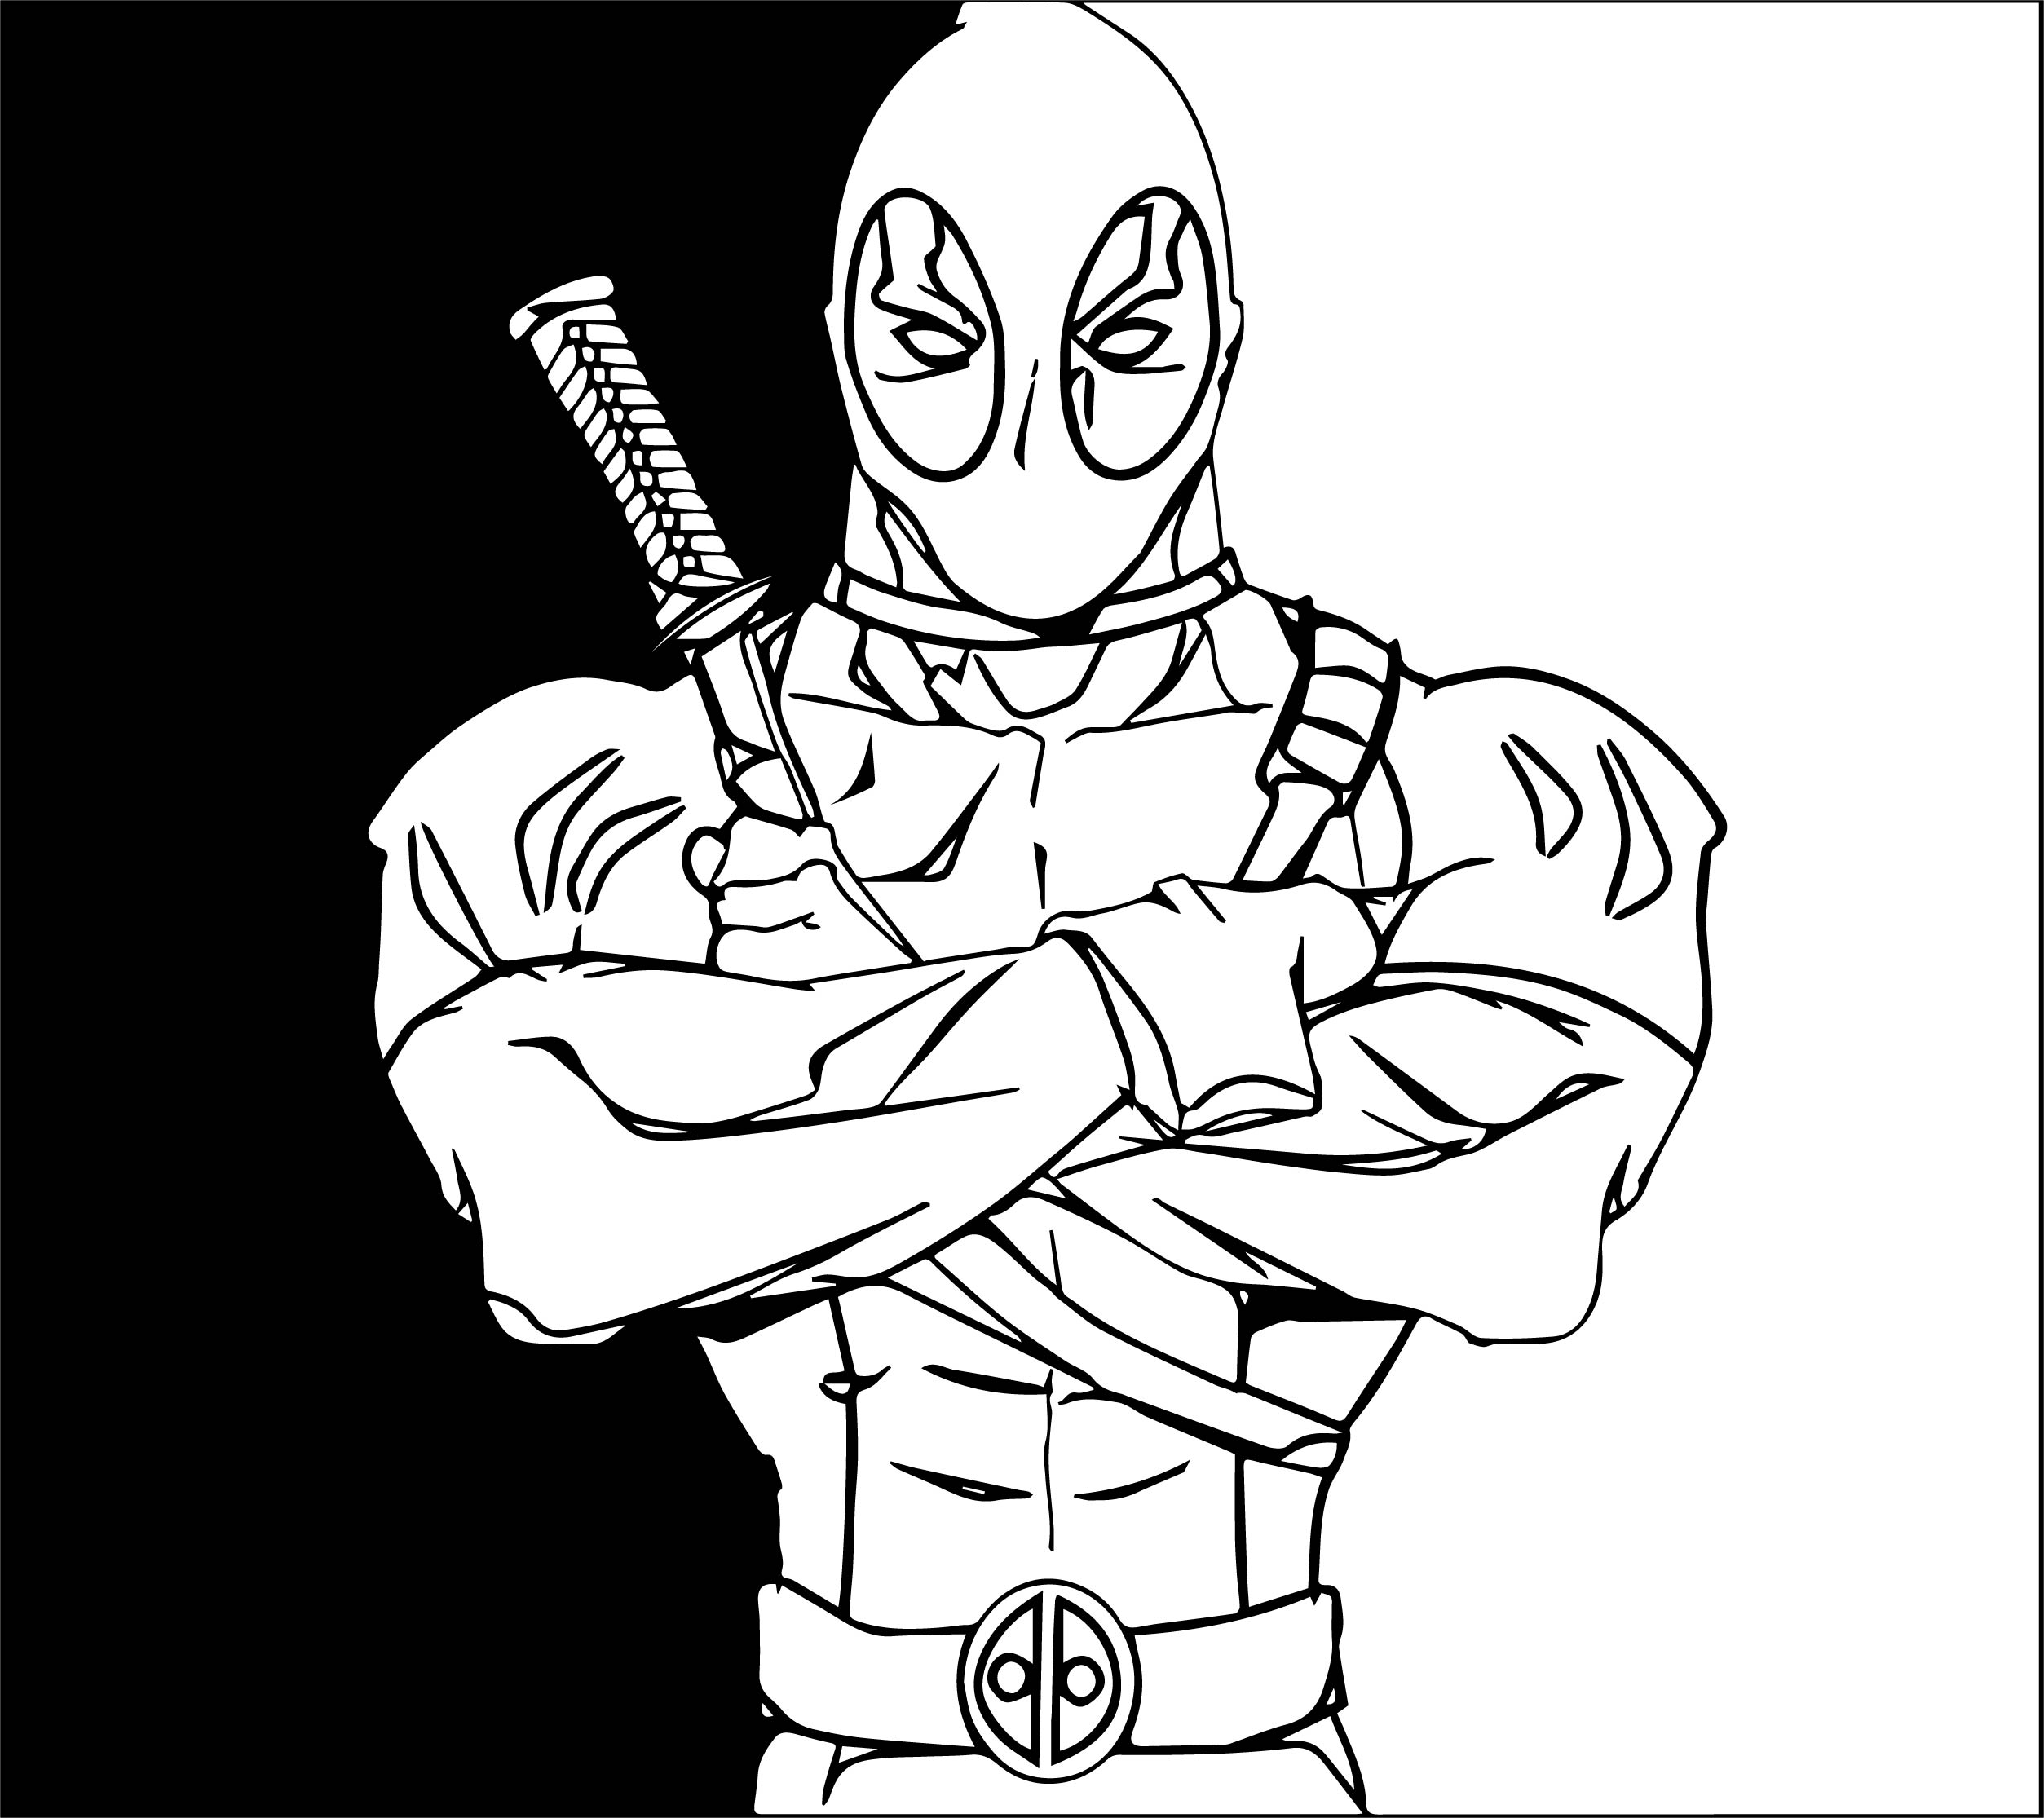 Deadpool Coloring Pages: Black White Deadpool Coloring Page